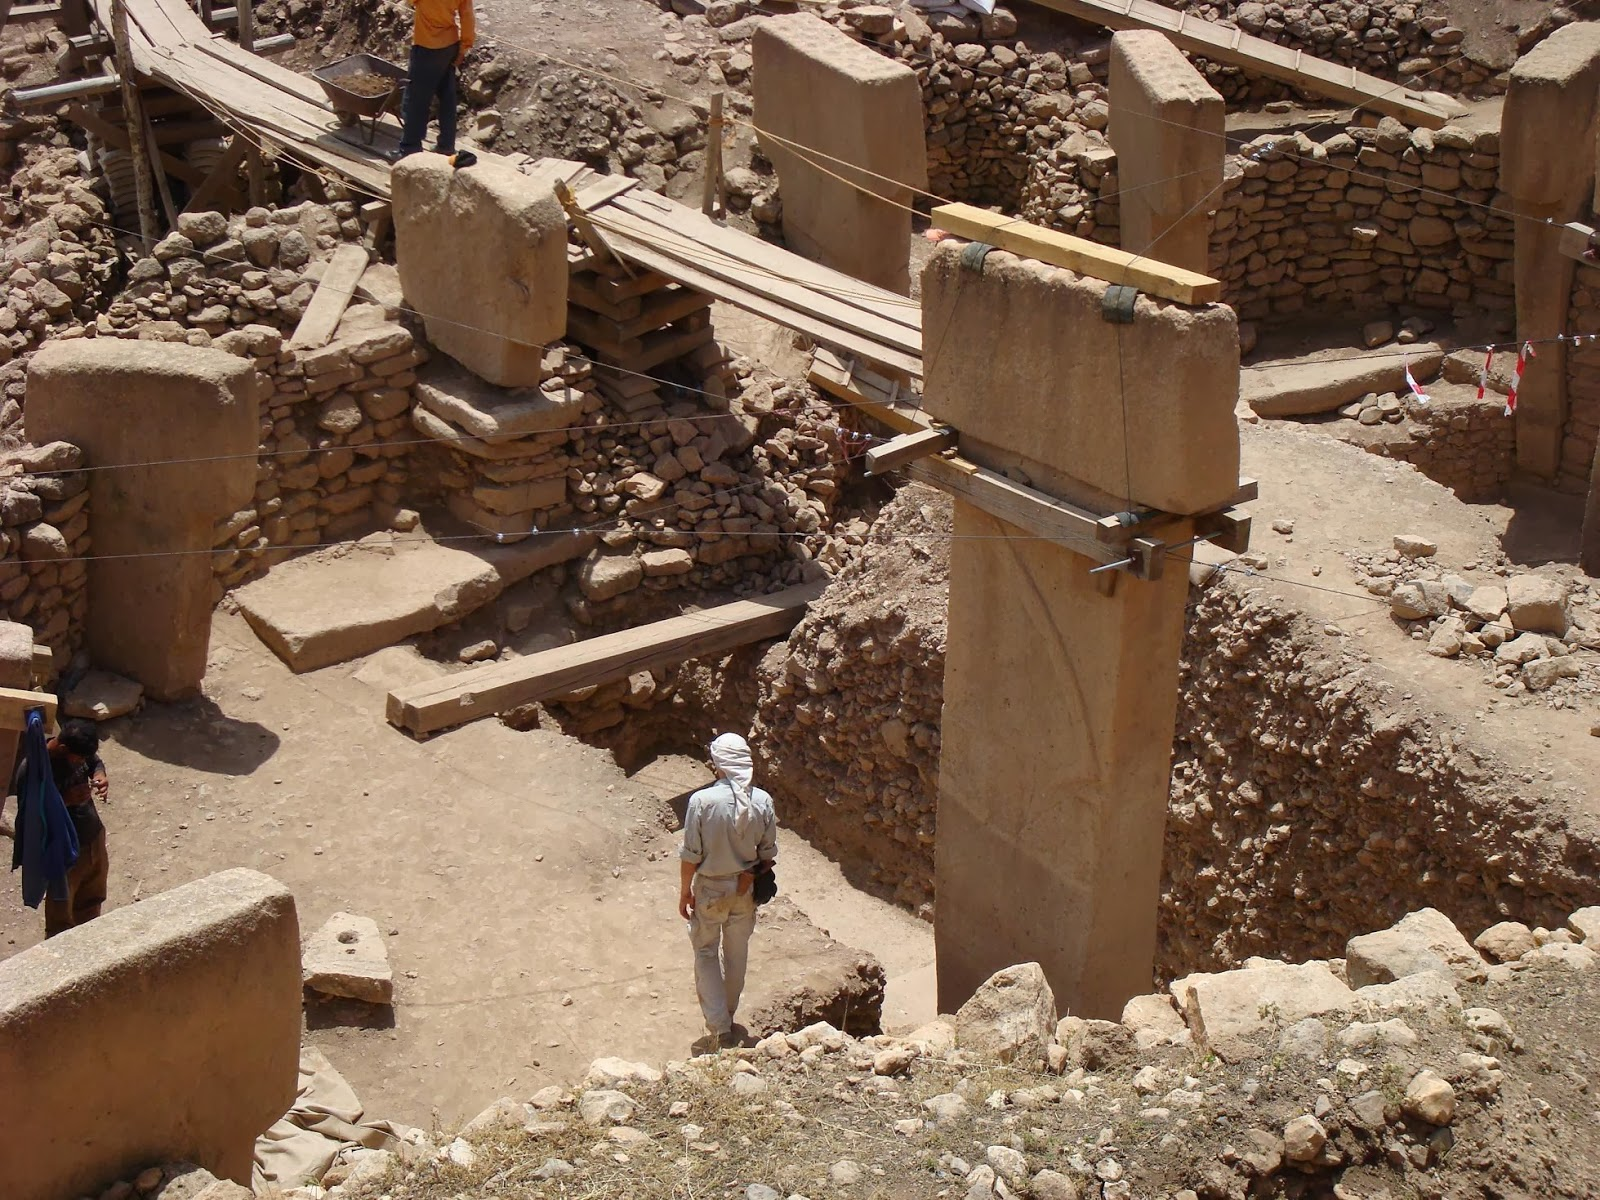 temples of gobekli tepe Archaeologists worldwide are in rare agreement on the site's importance 'gobekli tepe changes everything,' says ian hodder, at stanford university.